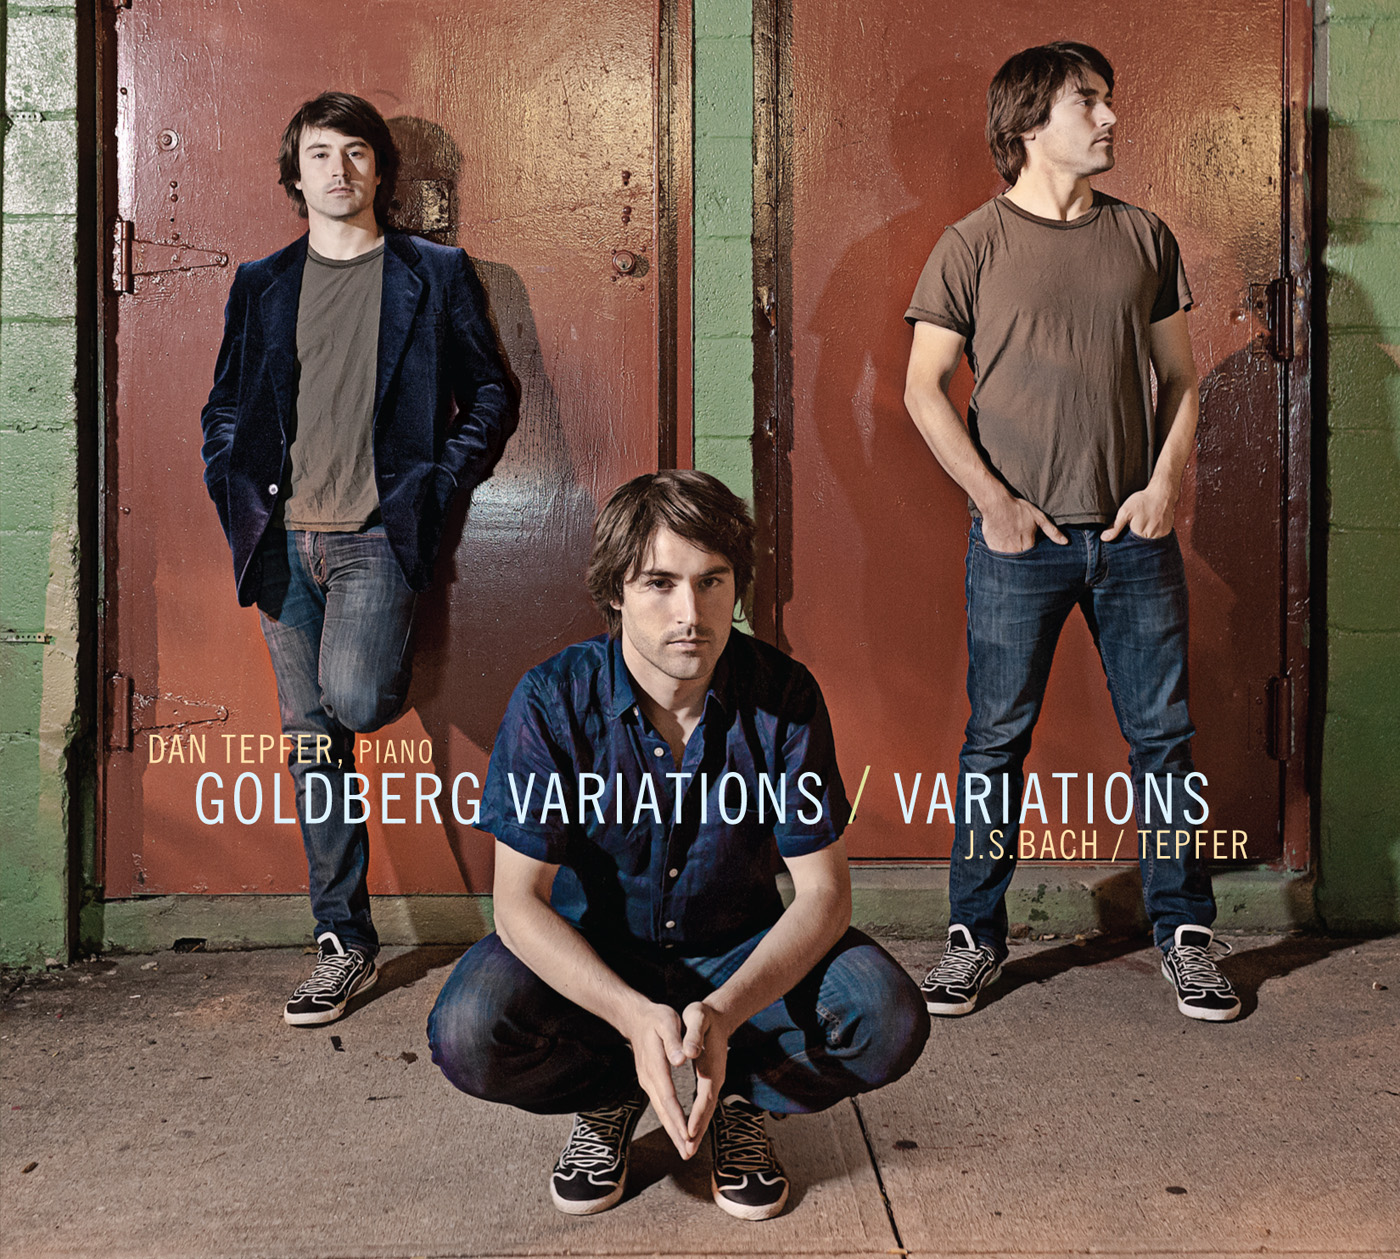 Goldberg Variations / Variations by Dan Tepfer cover